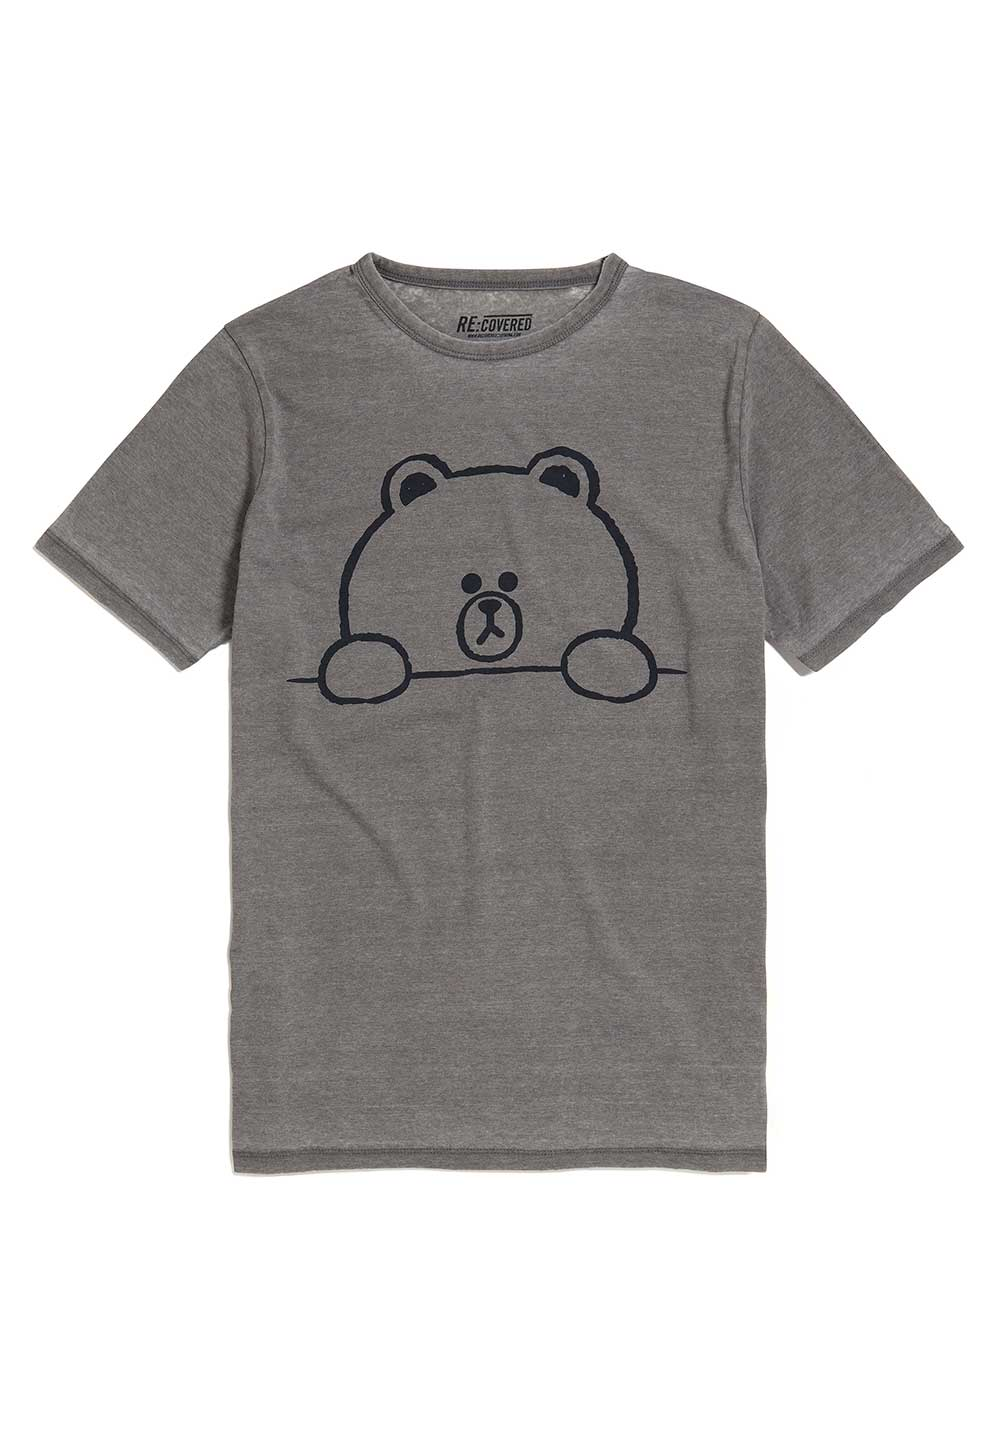 Recovered Line Friends Brown Outline Vintage Grey T-Shirt